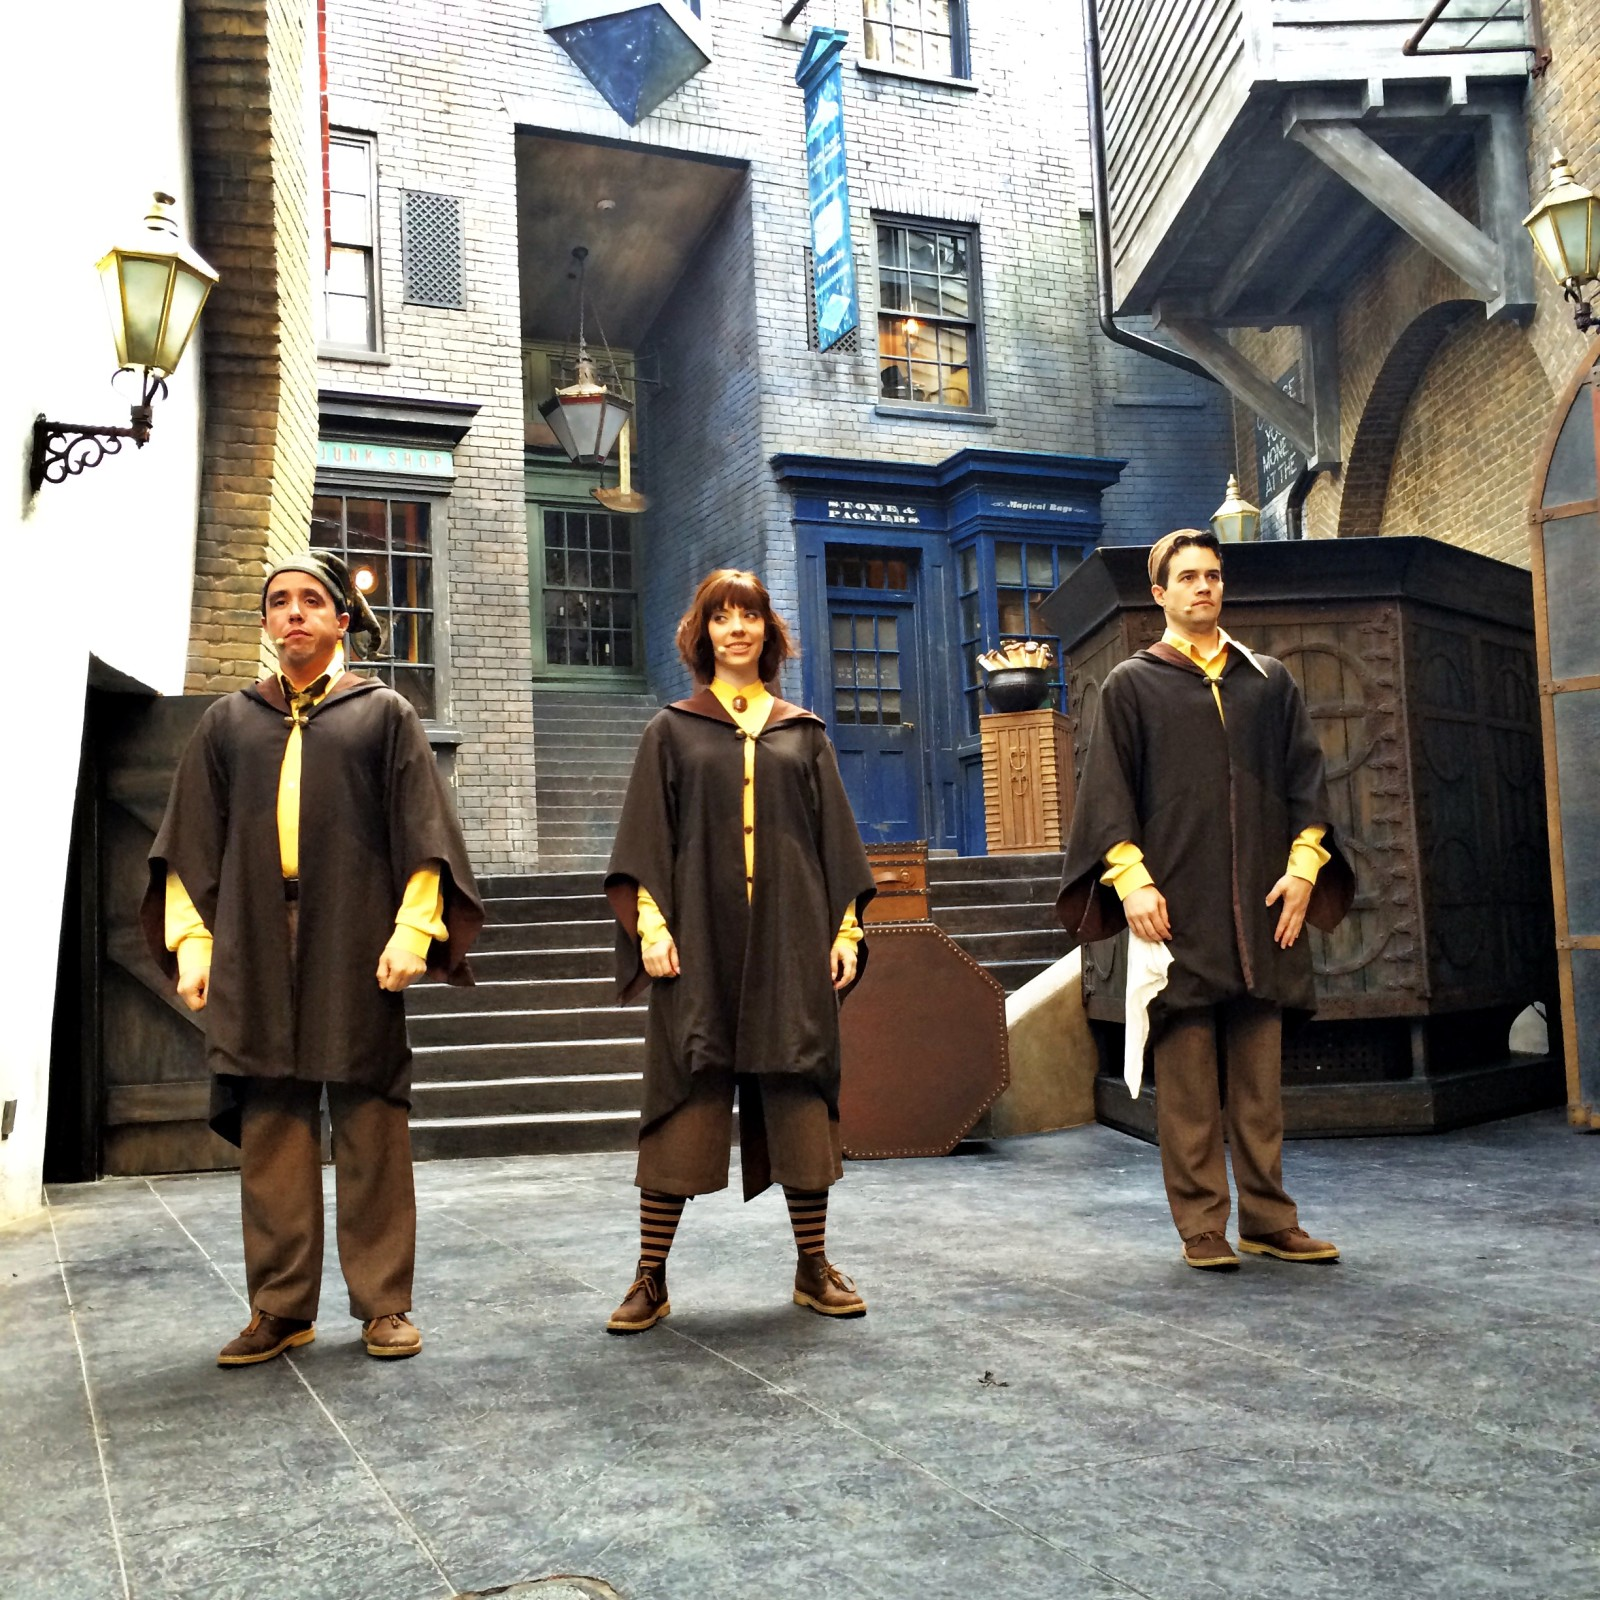 Diagon Alley The Tale of Three Brothers - Actors